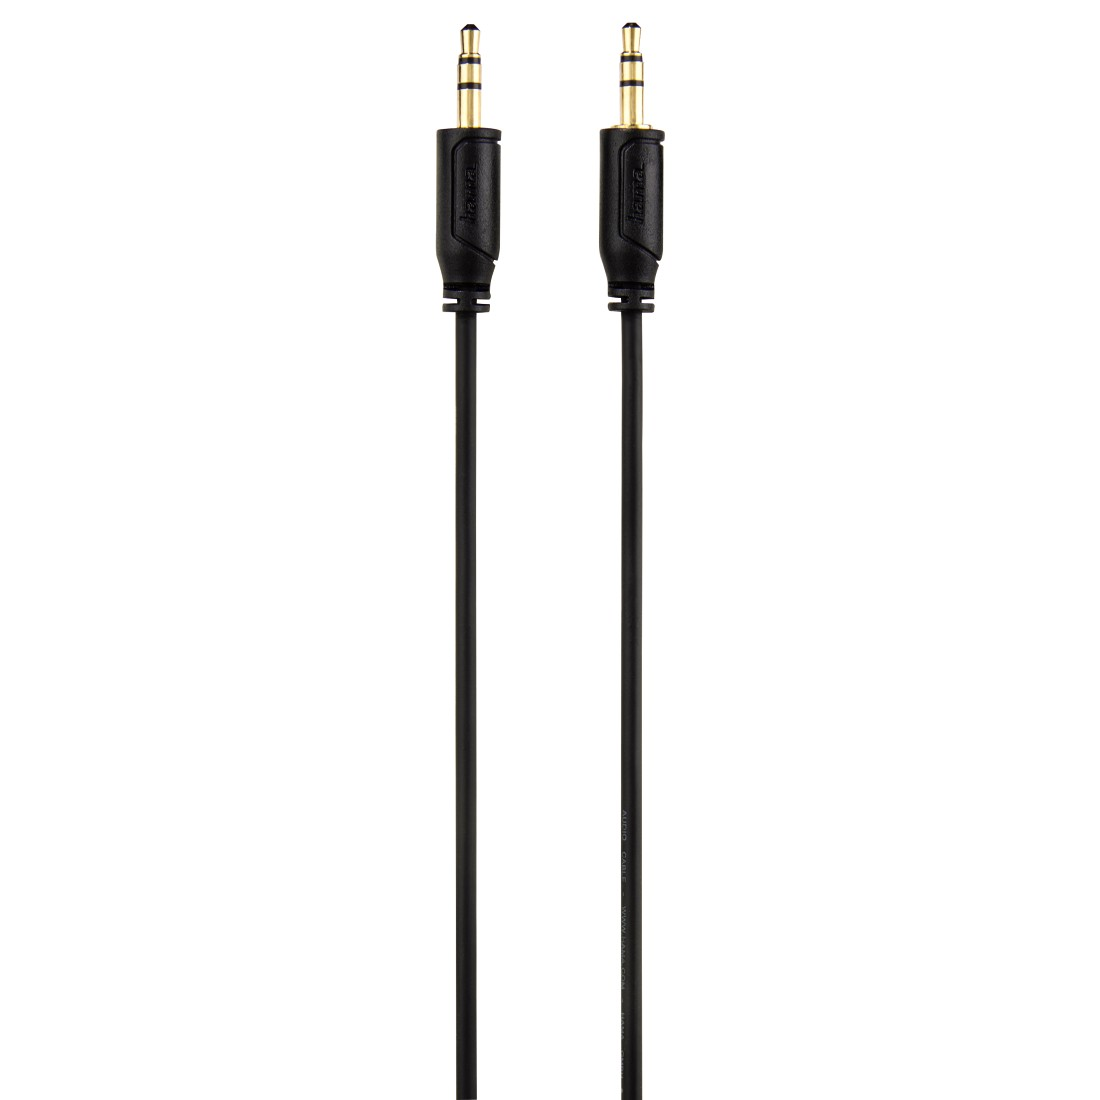 "abx2 High-Res Image 2 - Hama, Cablu audio ""Flexi-Slim"" jack 3.5 mm, aurit, negru, 0.75 m"